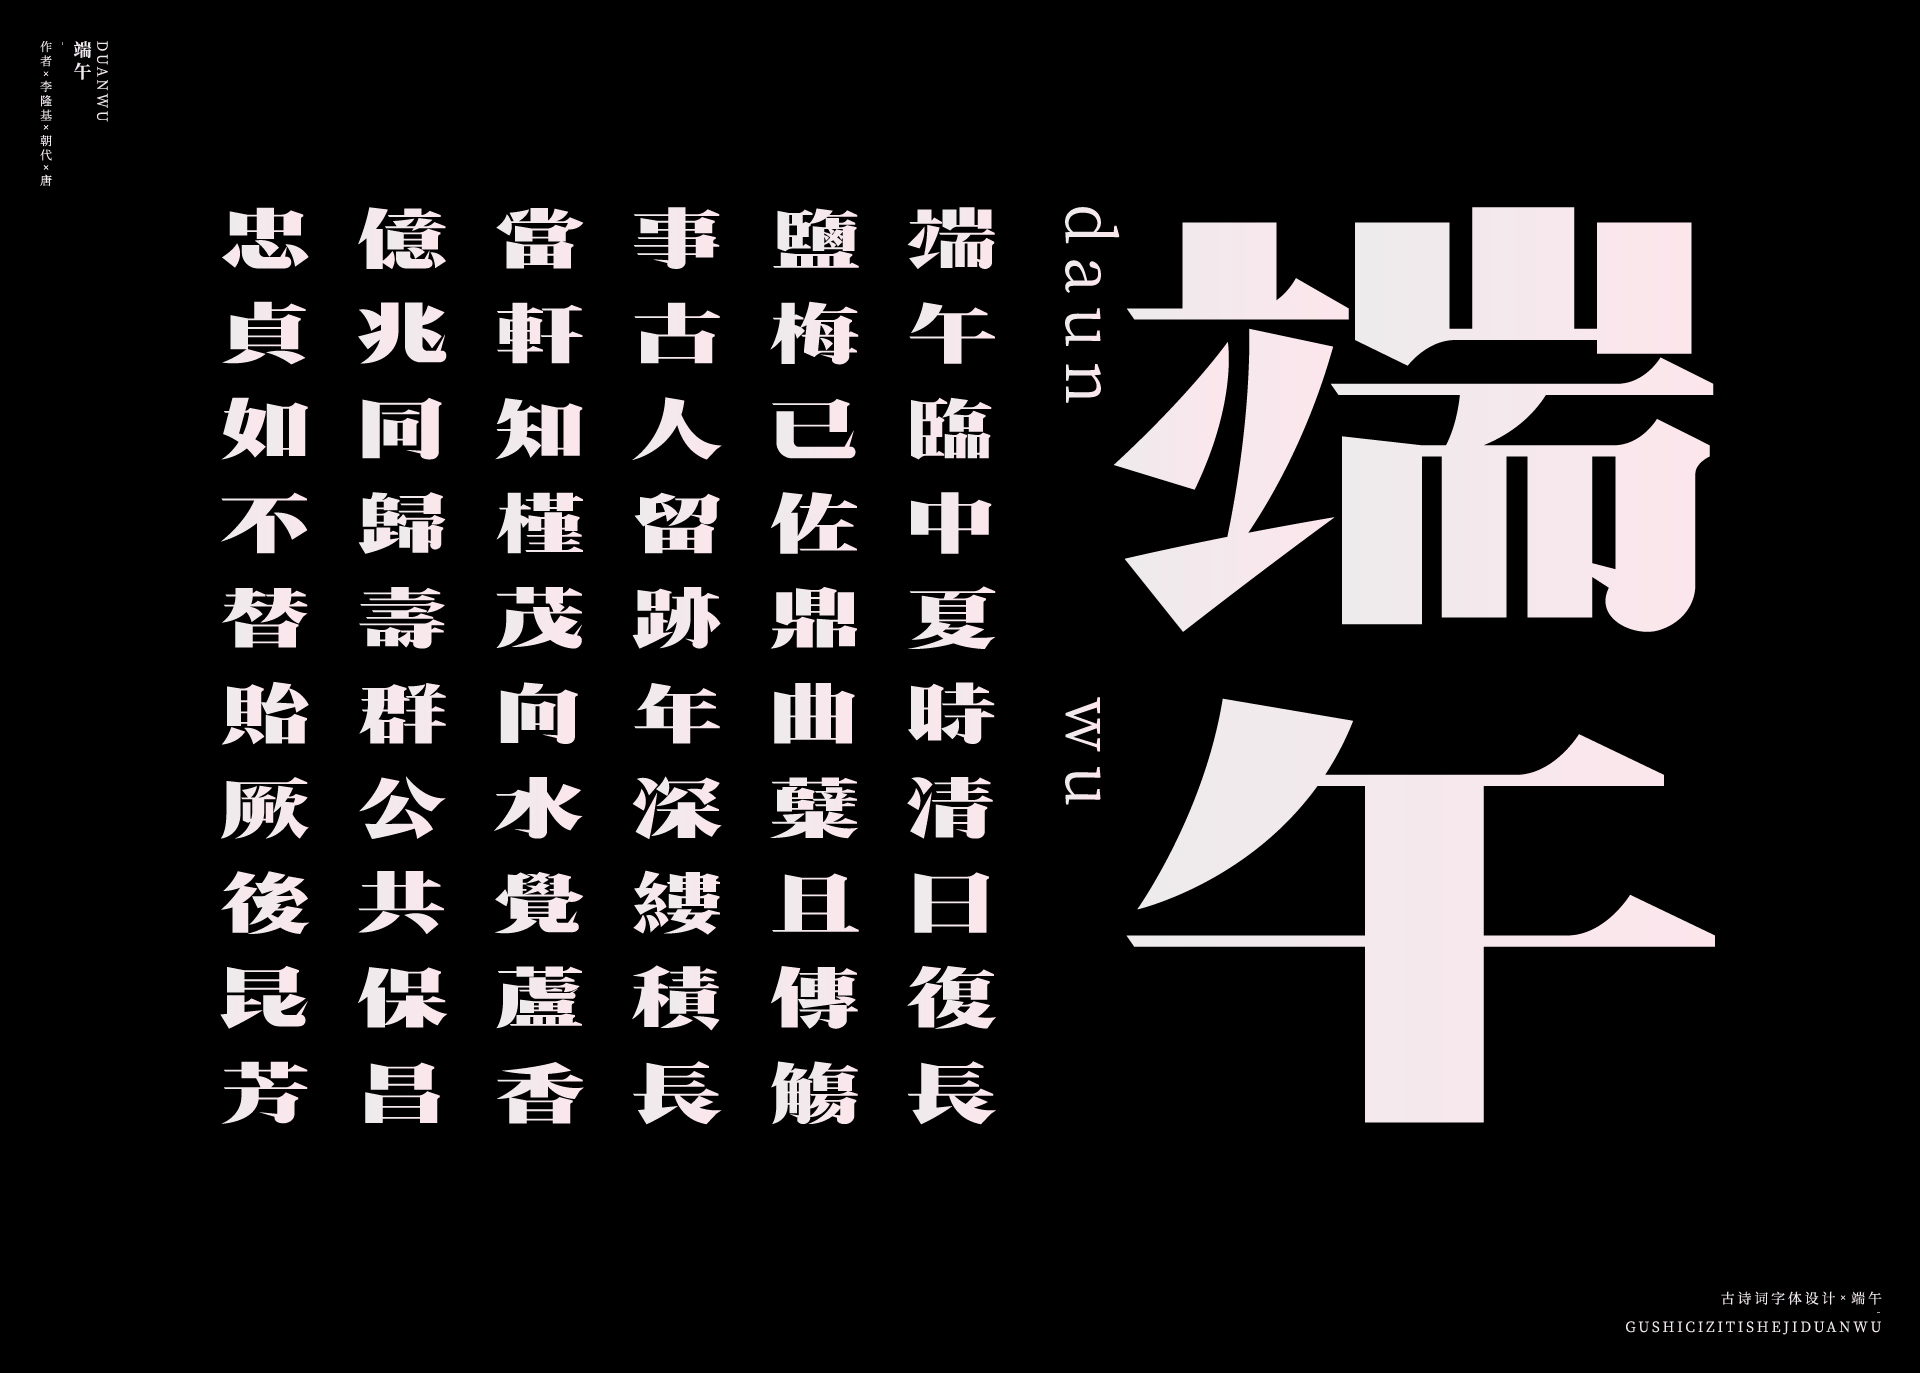 Font design of ancient poetry-Dragon Boat Festival